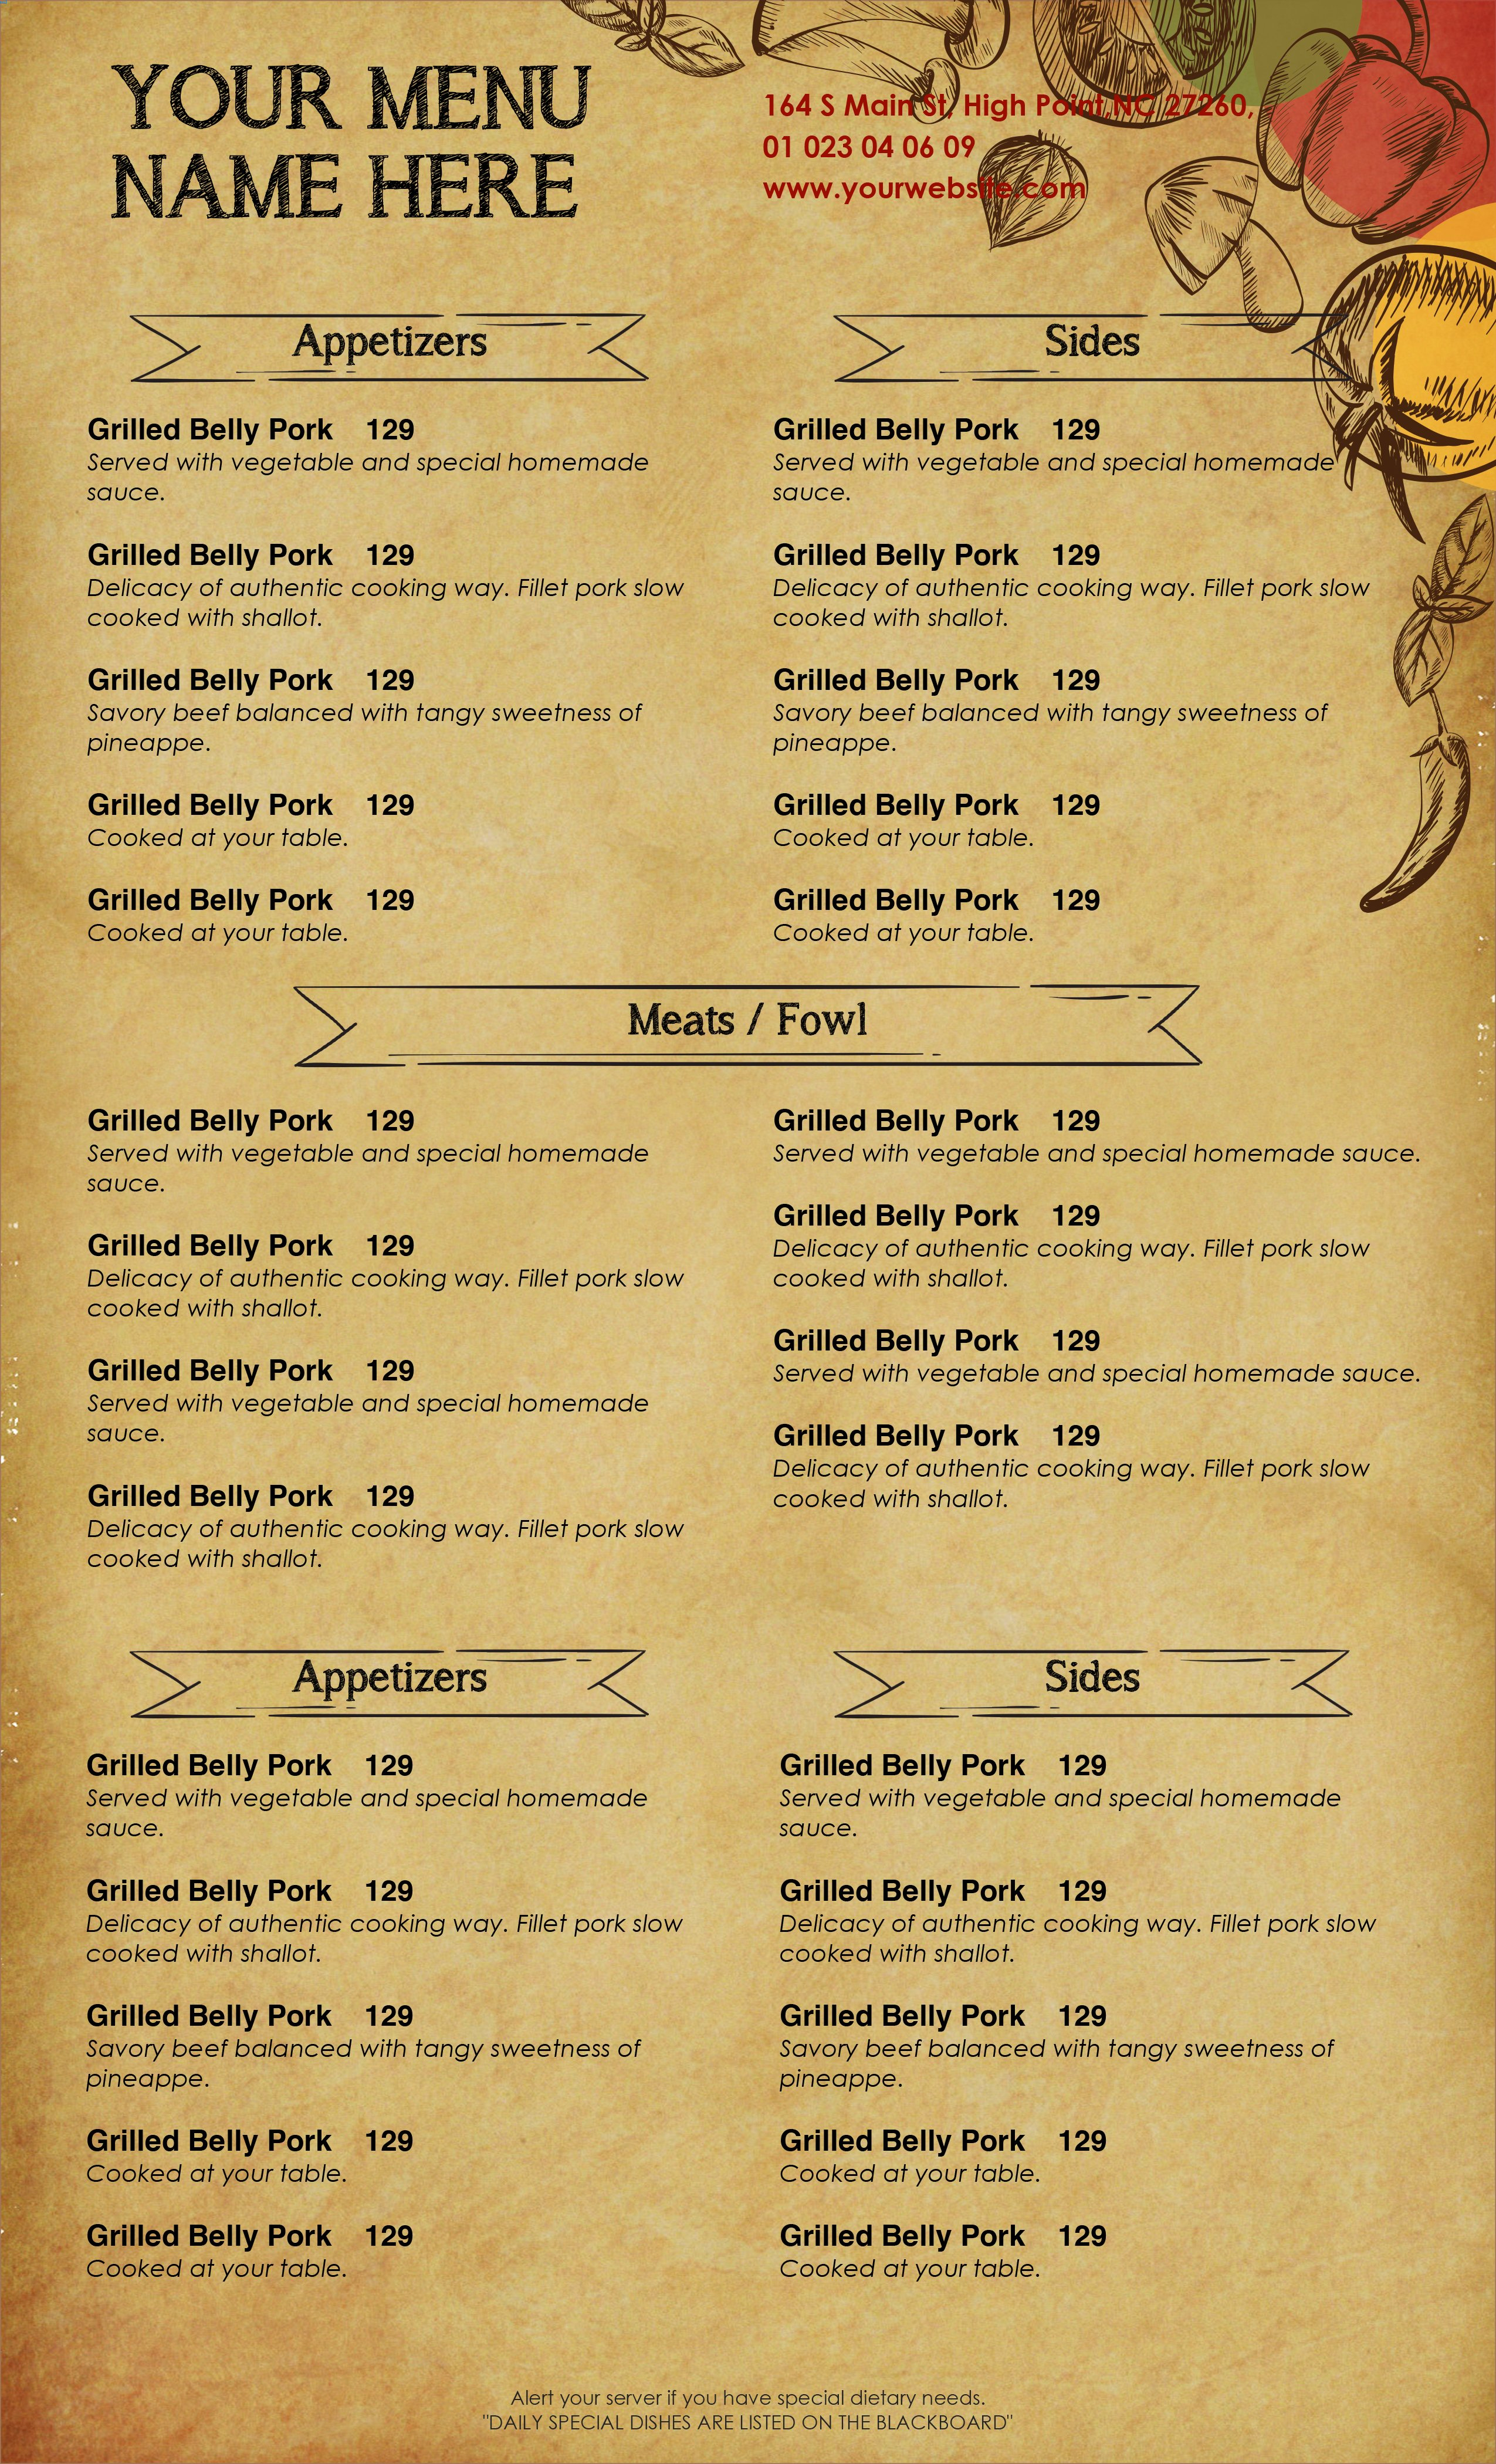 Free Catering Menu Templates Awesome Design & Templates Menu Templates Wedding Menu Food